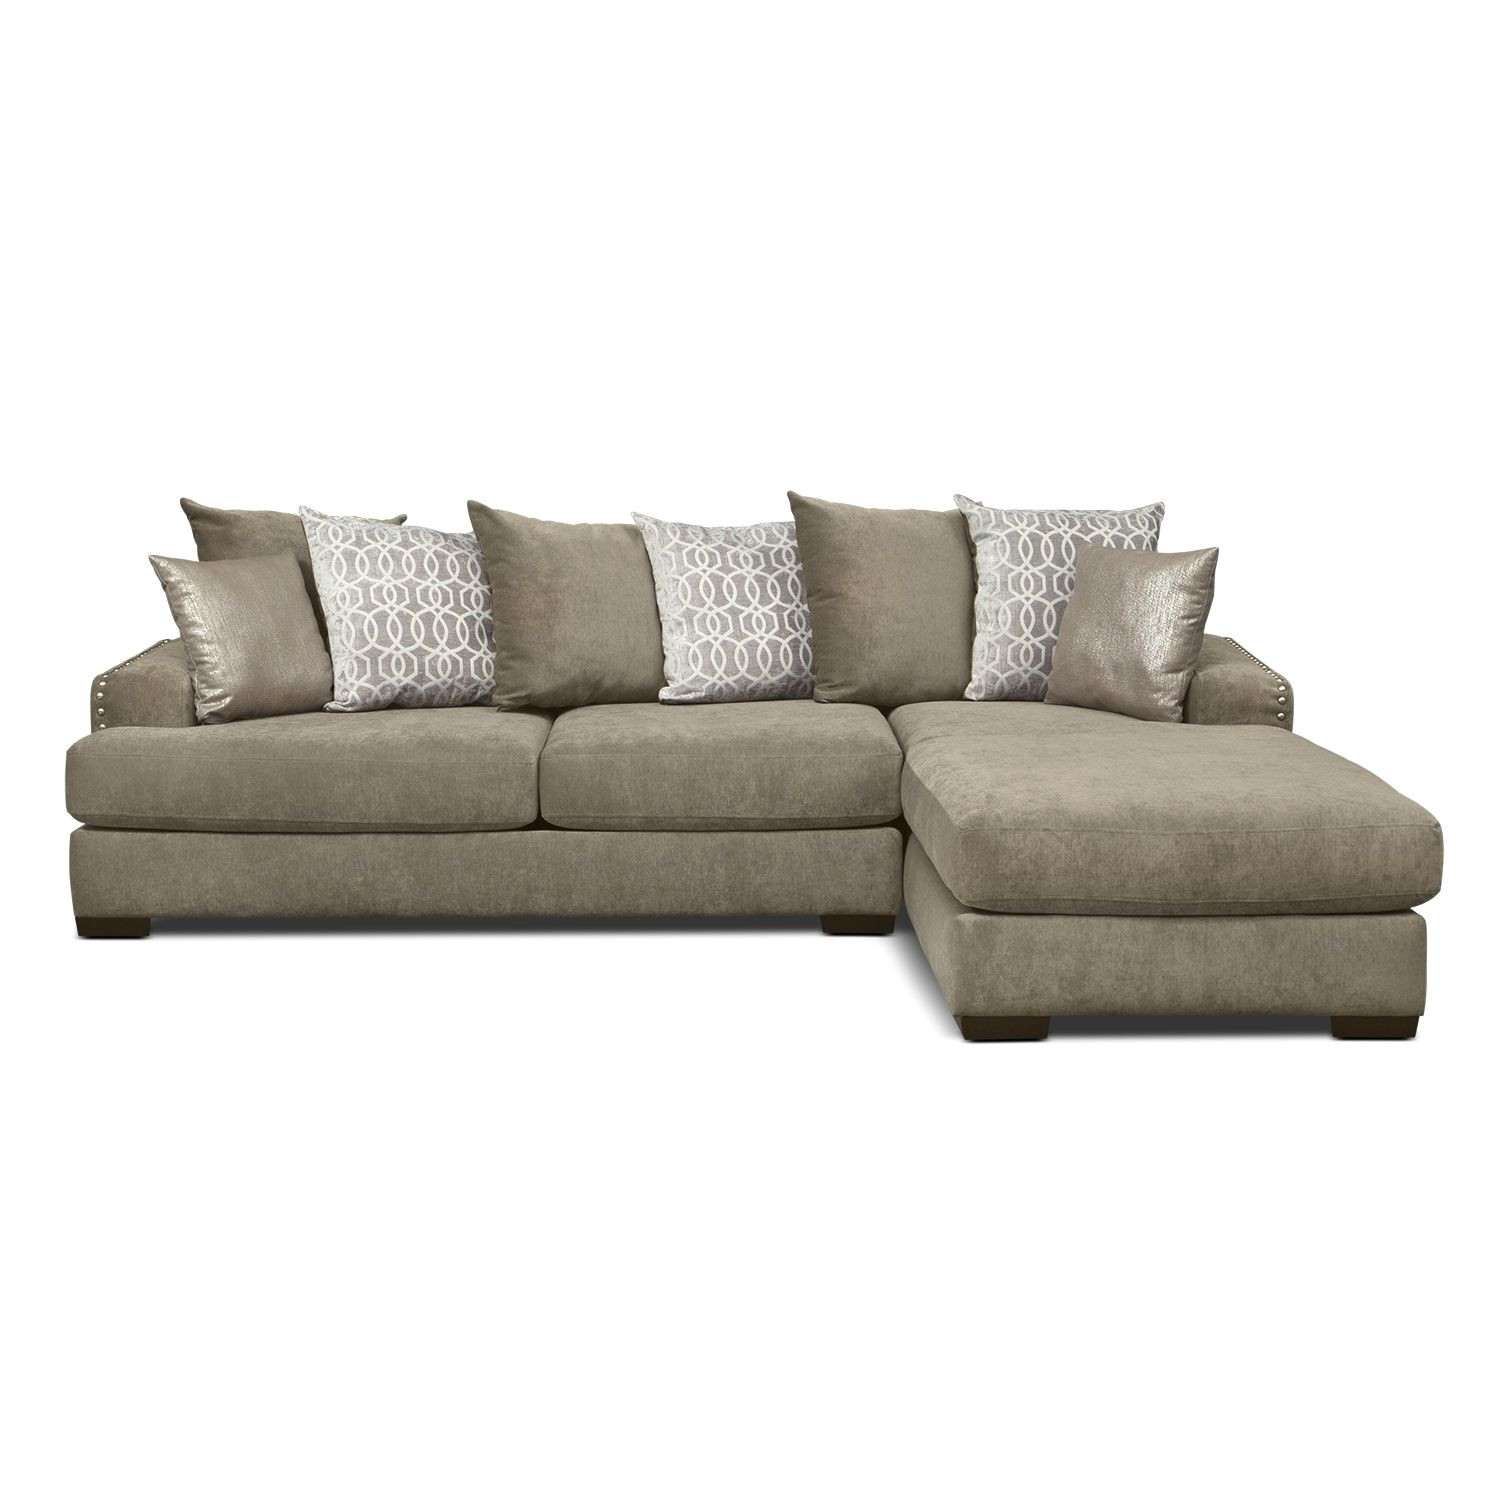 1000 tempo 2 pc sectional with right facing chaise value city furniture